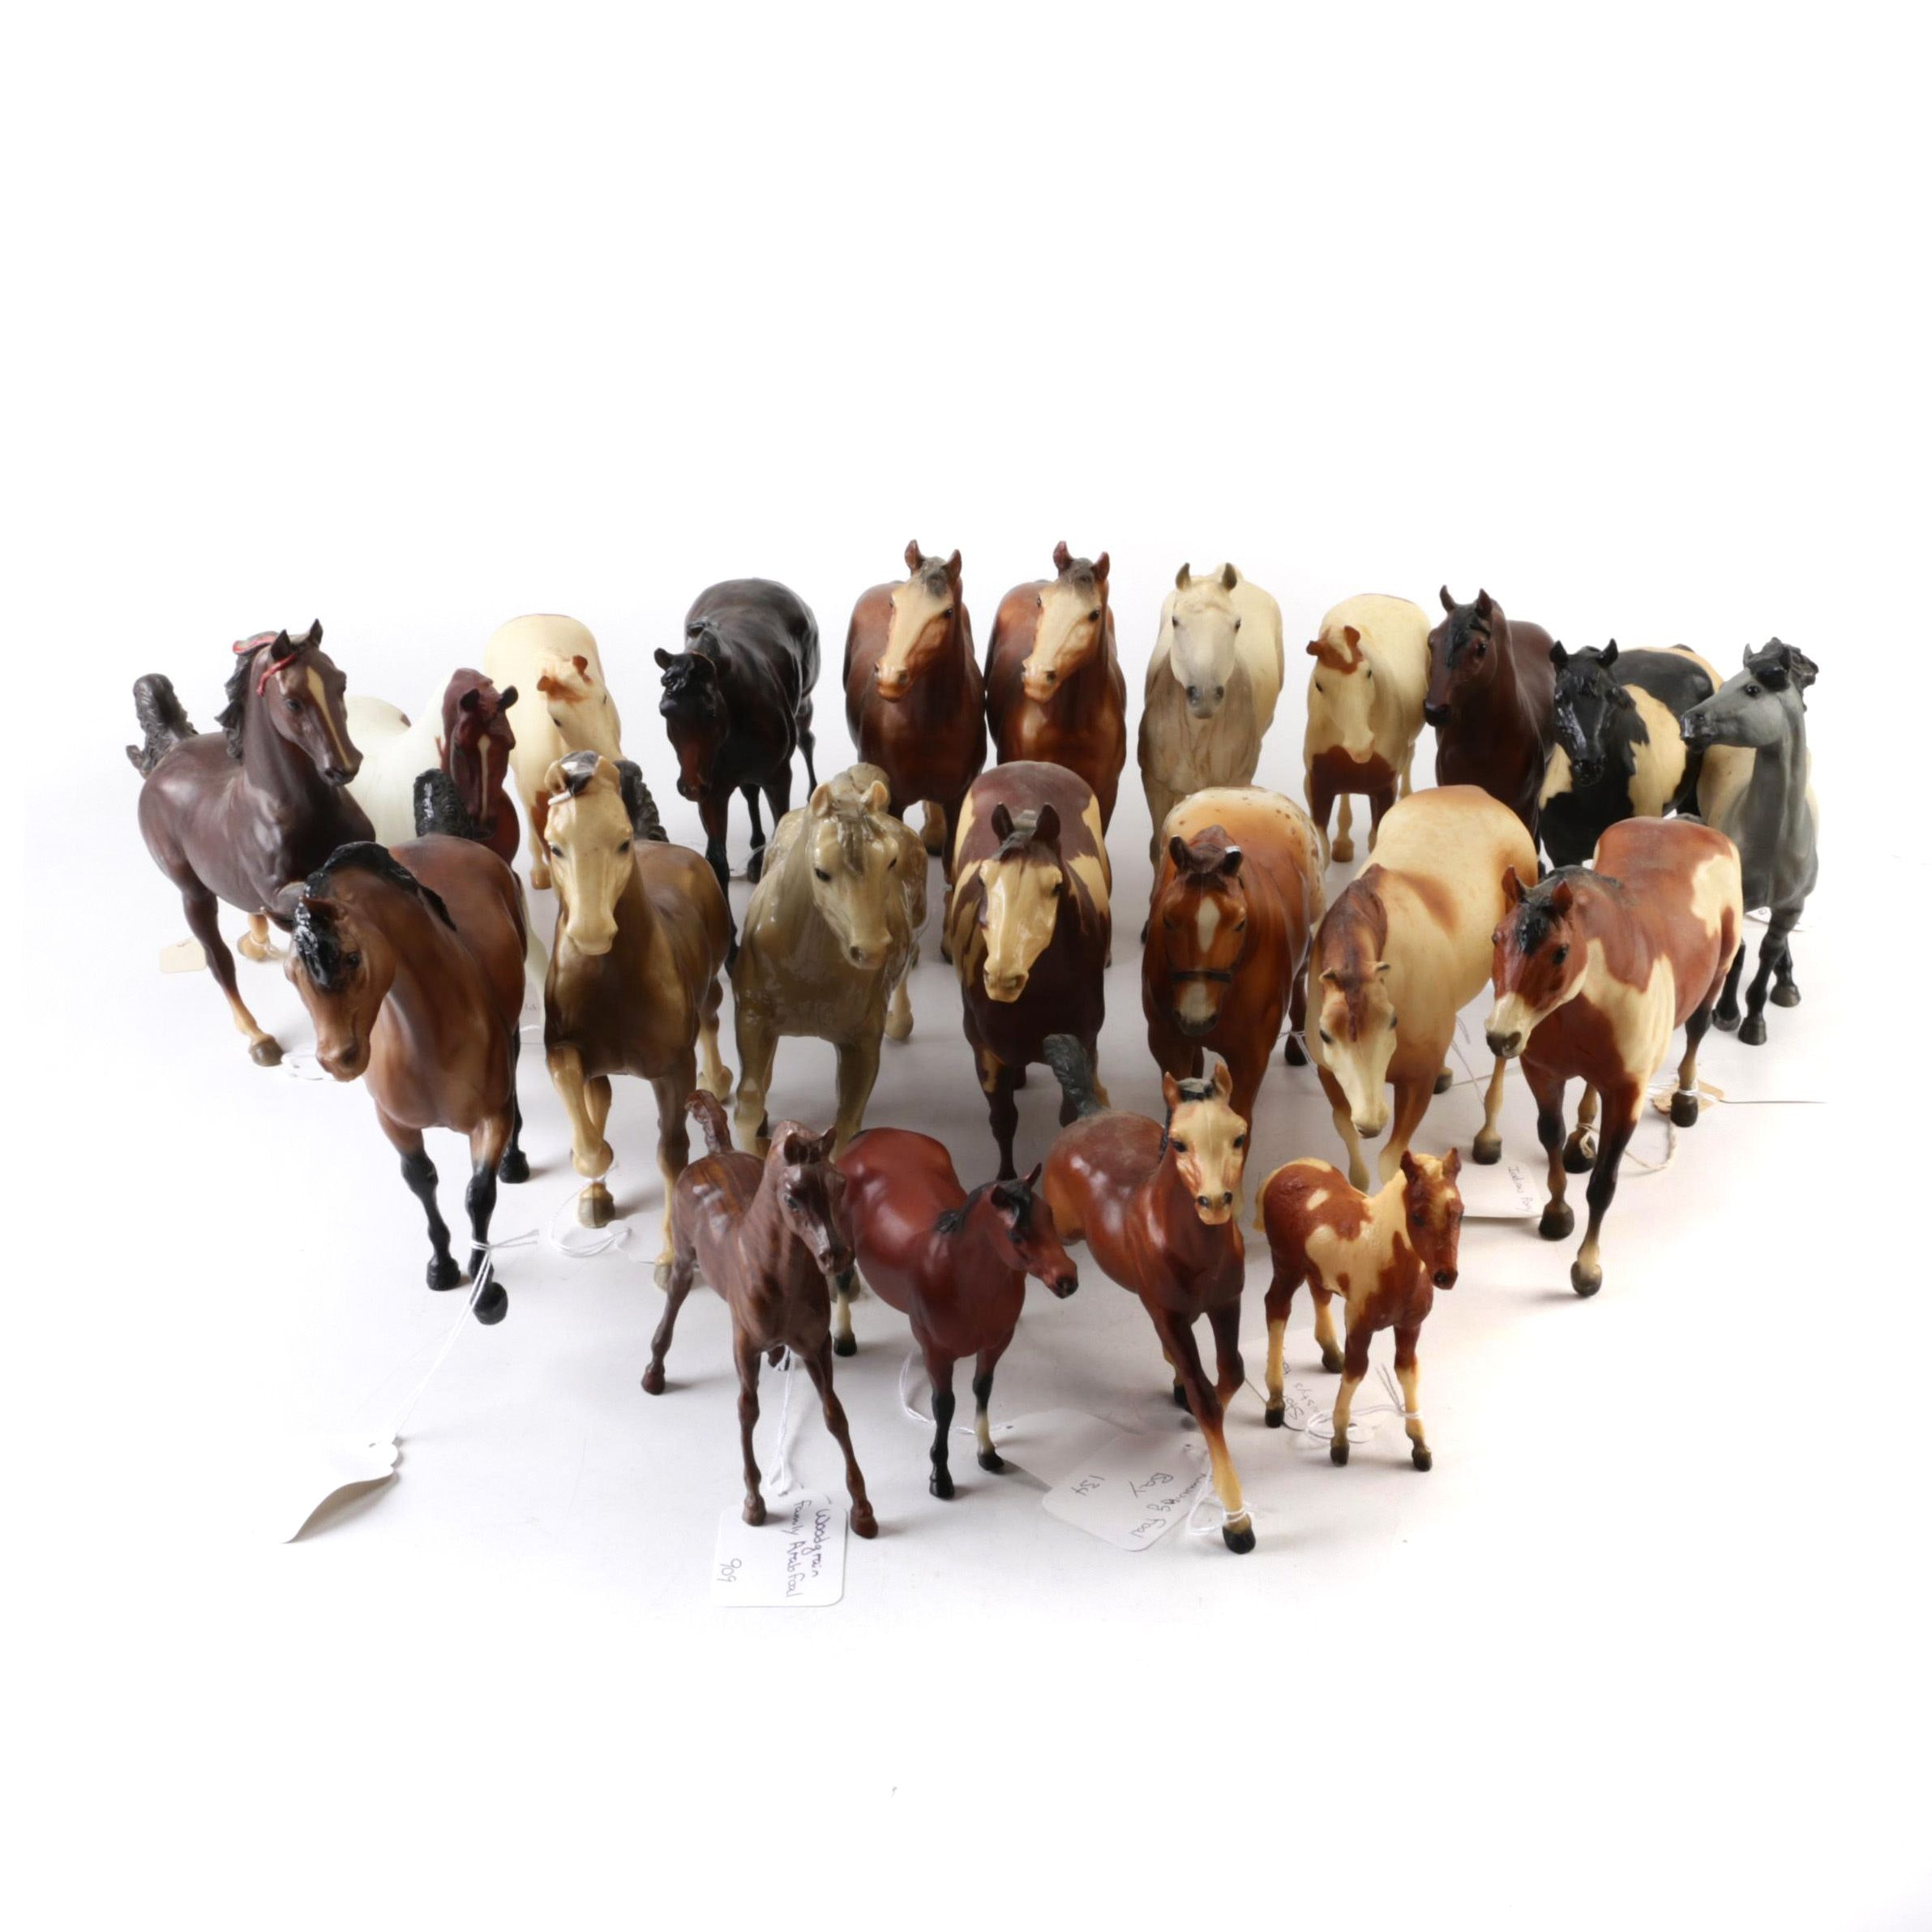 Horse Figurines Including Bay, Pinto, Appaloosa, and Clydesdale